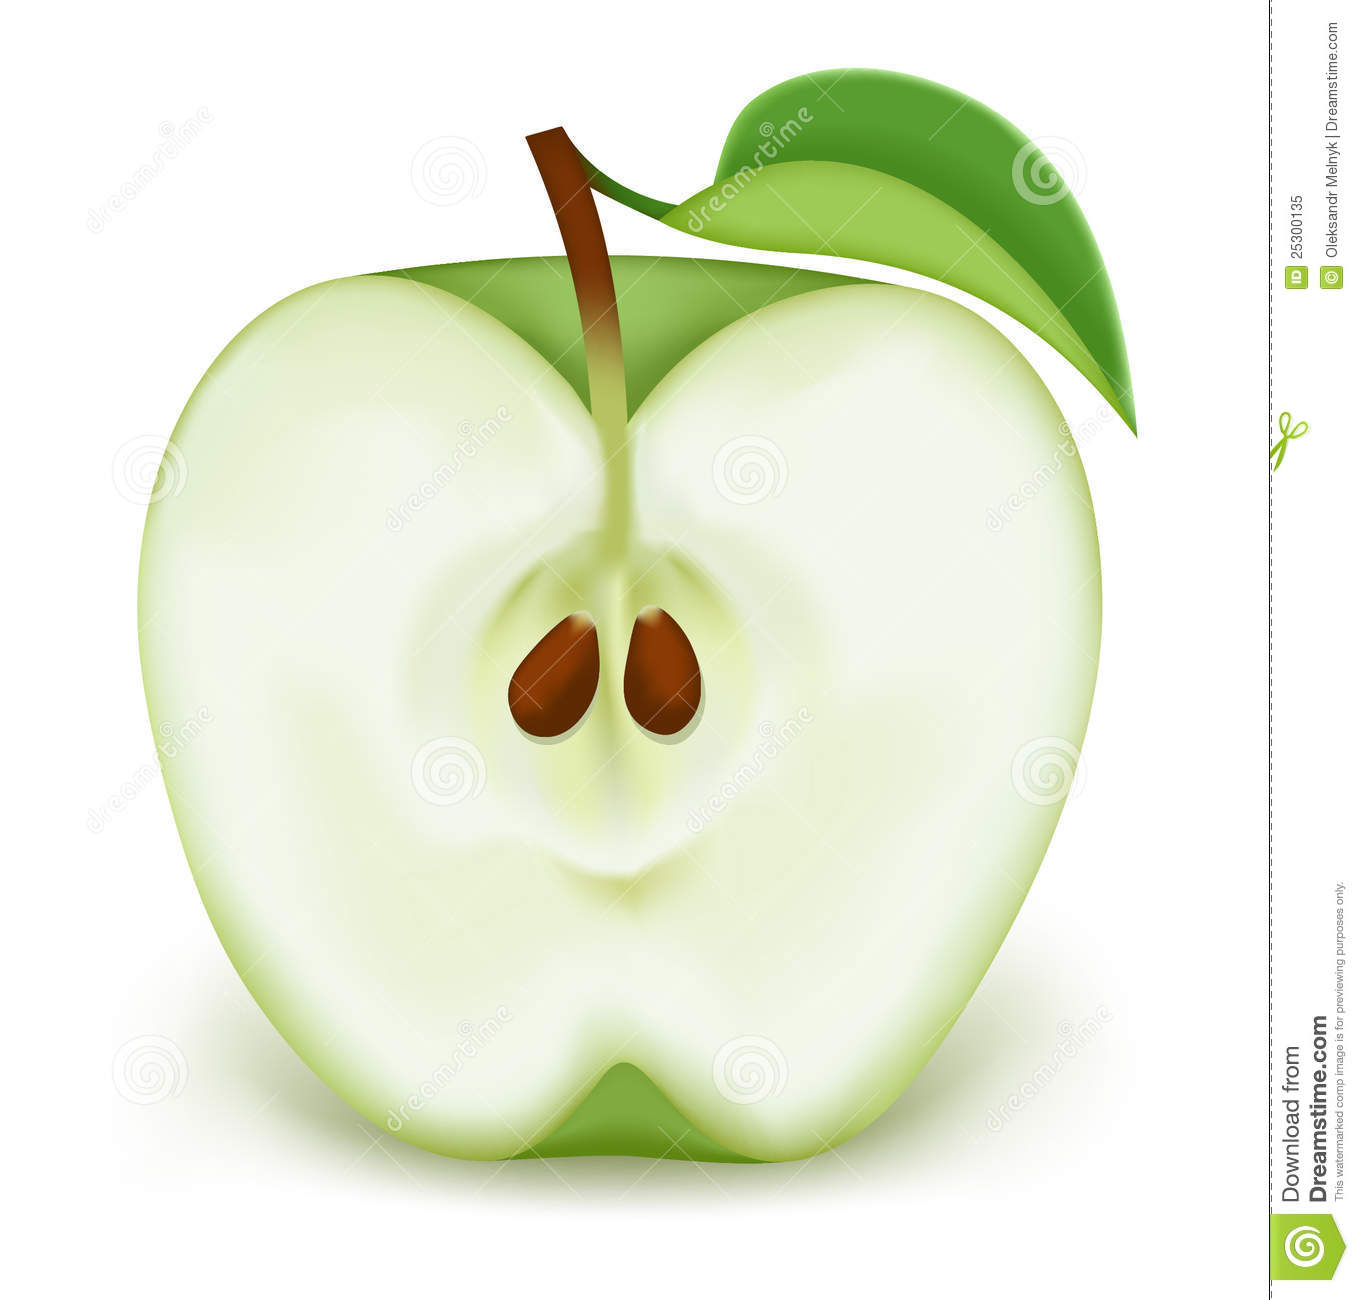 Vector illustration. Photorealistic. Half a green apple on white.